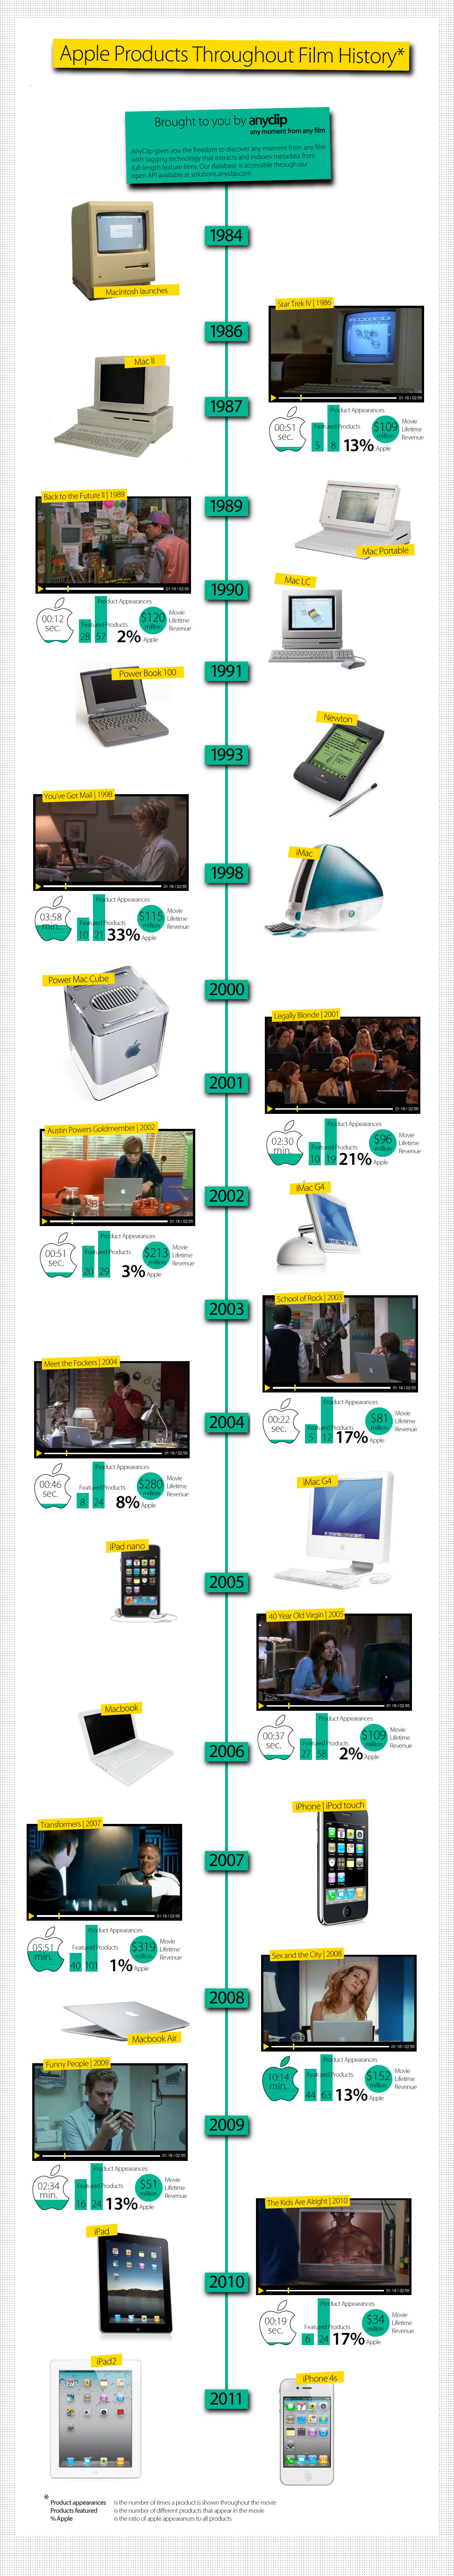 apple film history